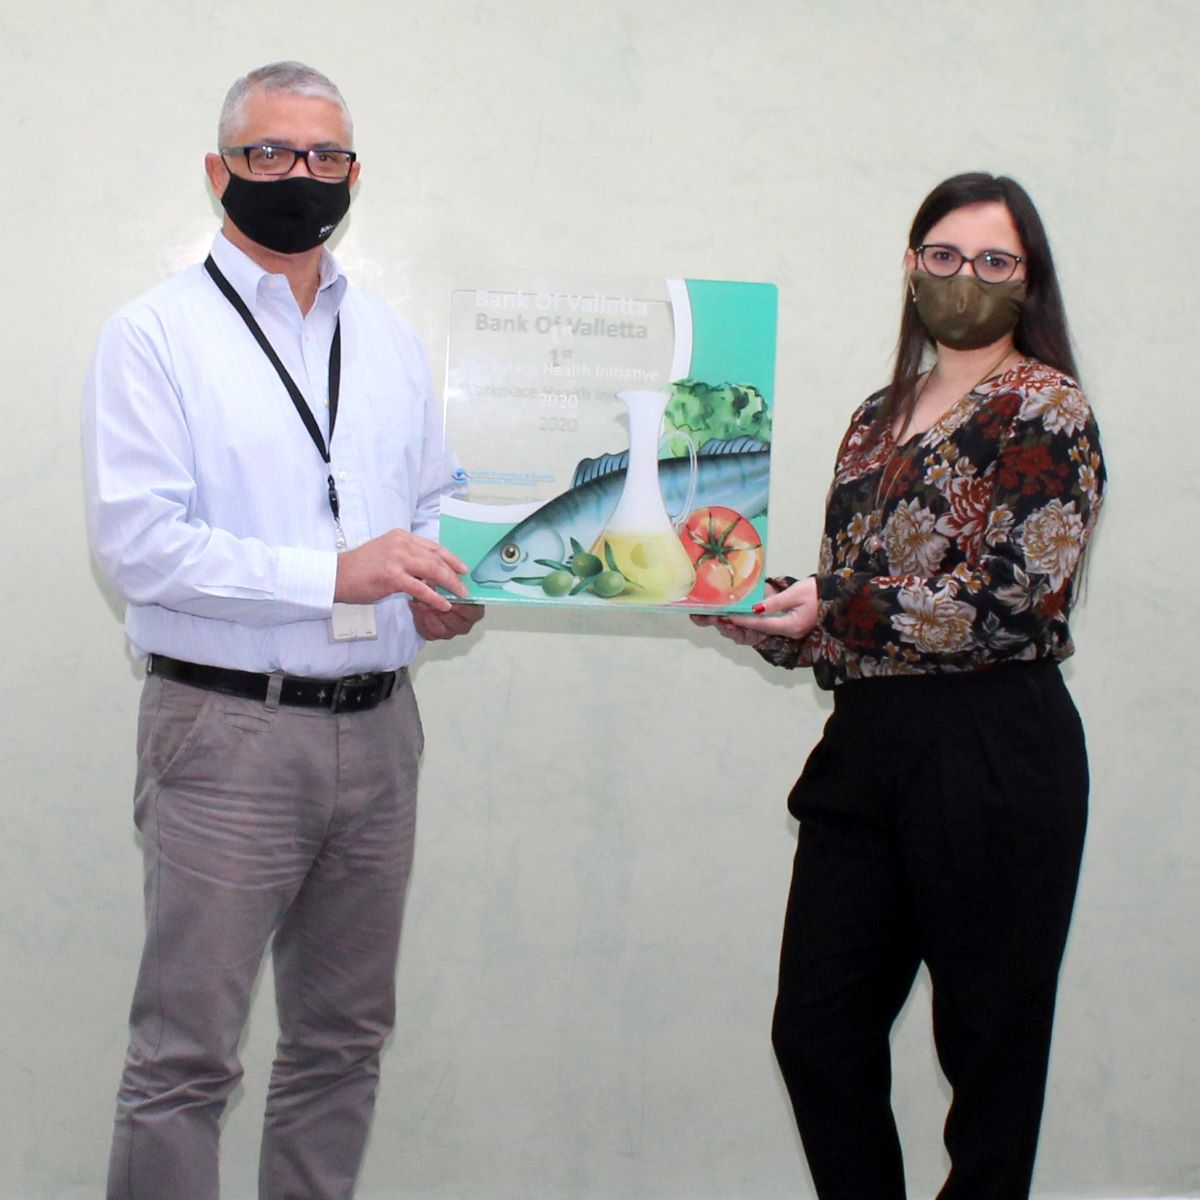 Bank of Valletta awarded Best Workplace Health Initiative